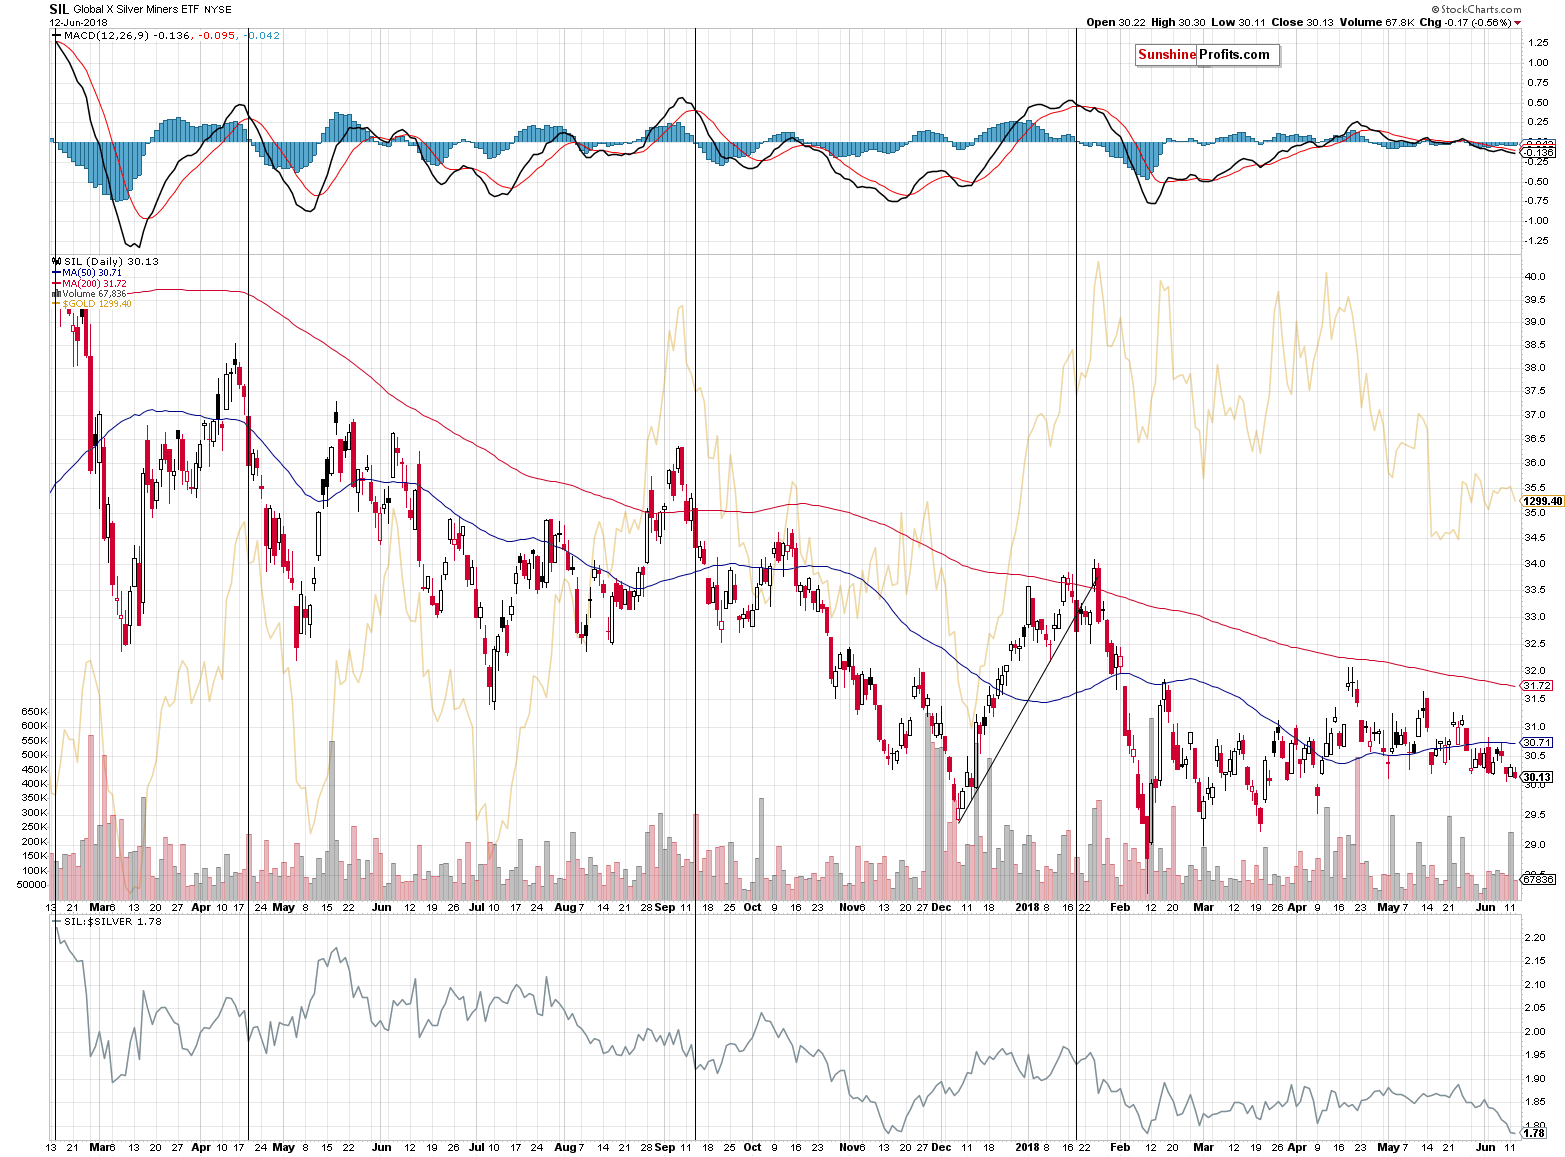 Global X Silver Miners ETF